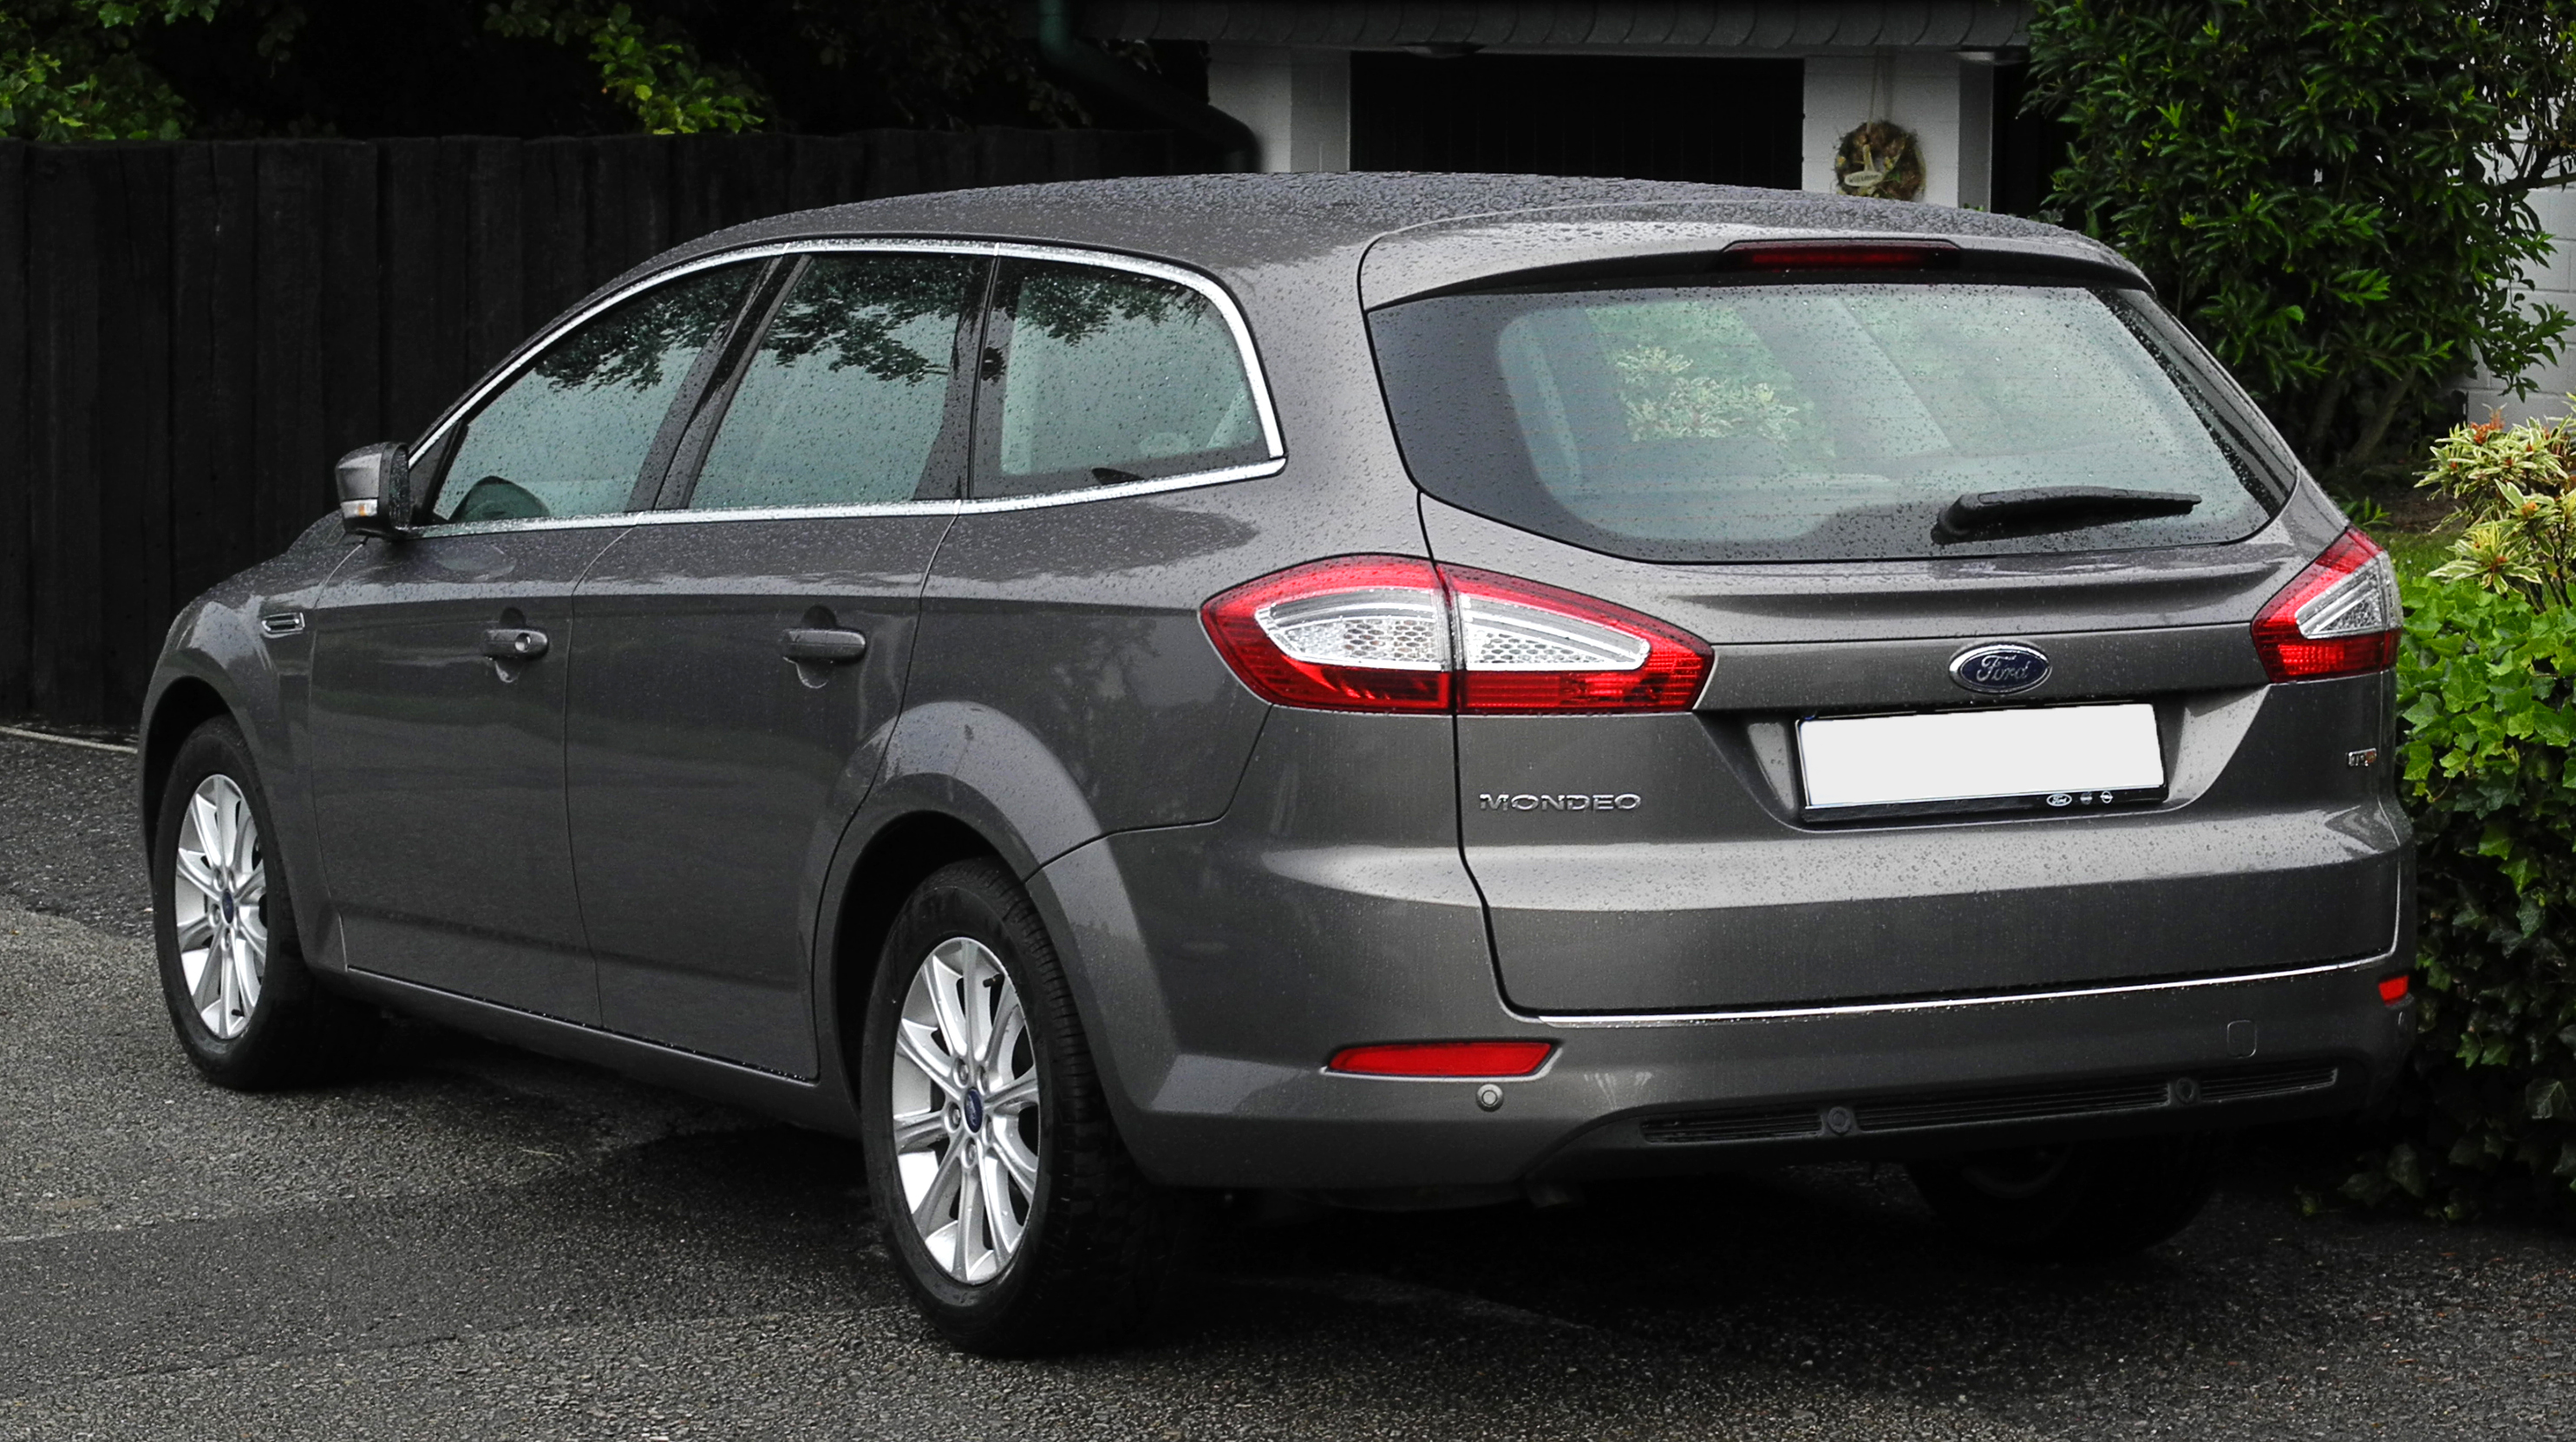 The 10 Best Used Cars With Big Boots With Available Space In Litres